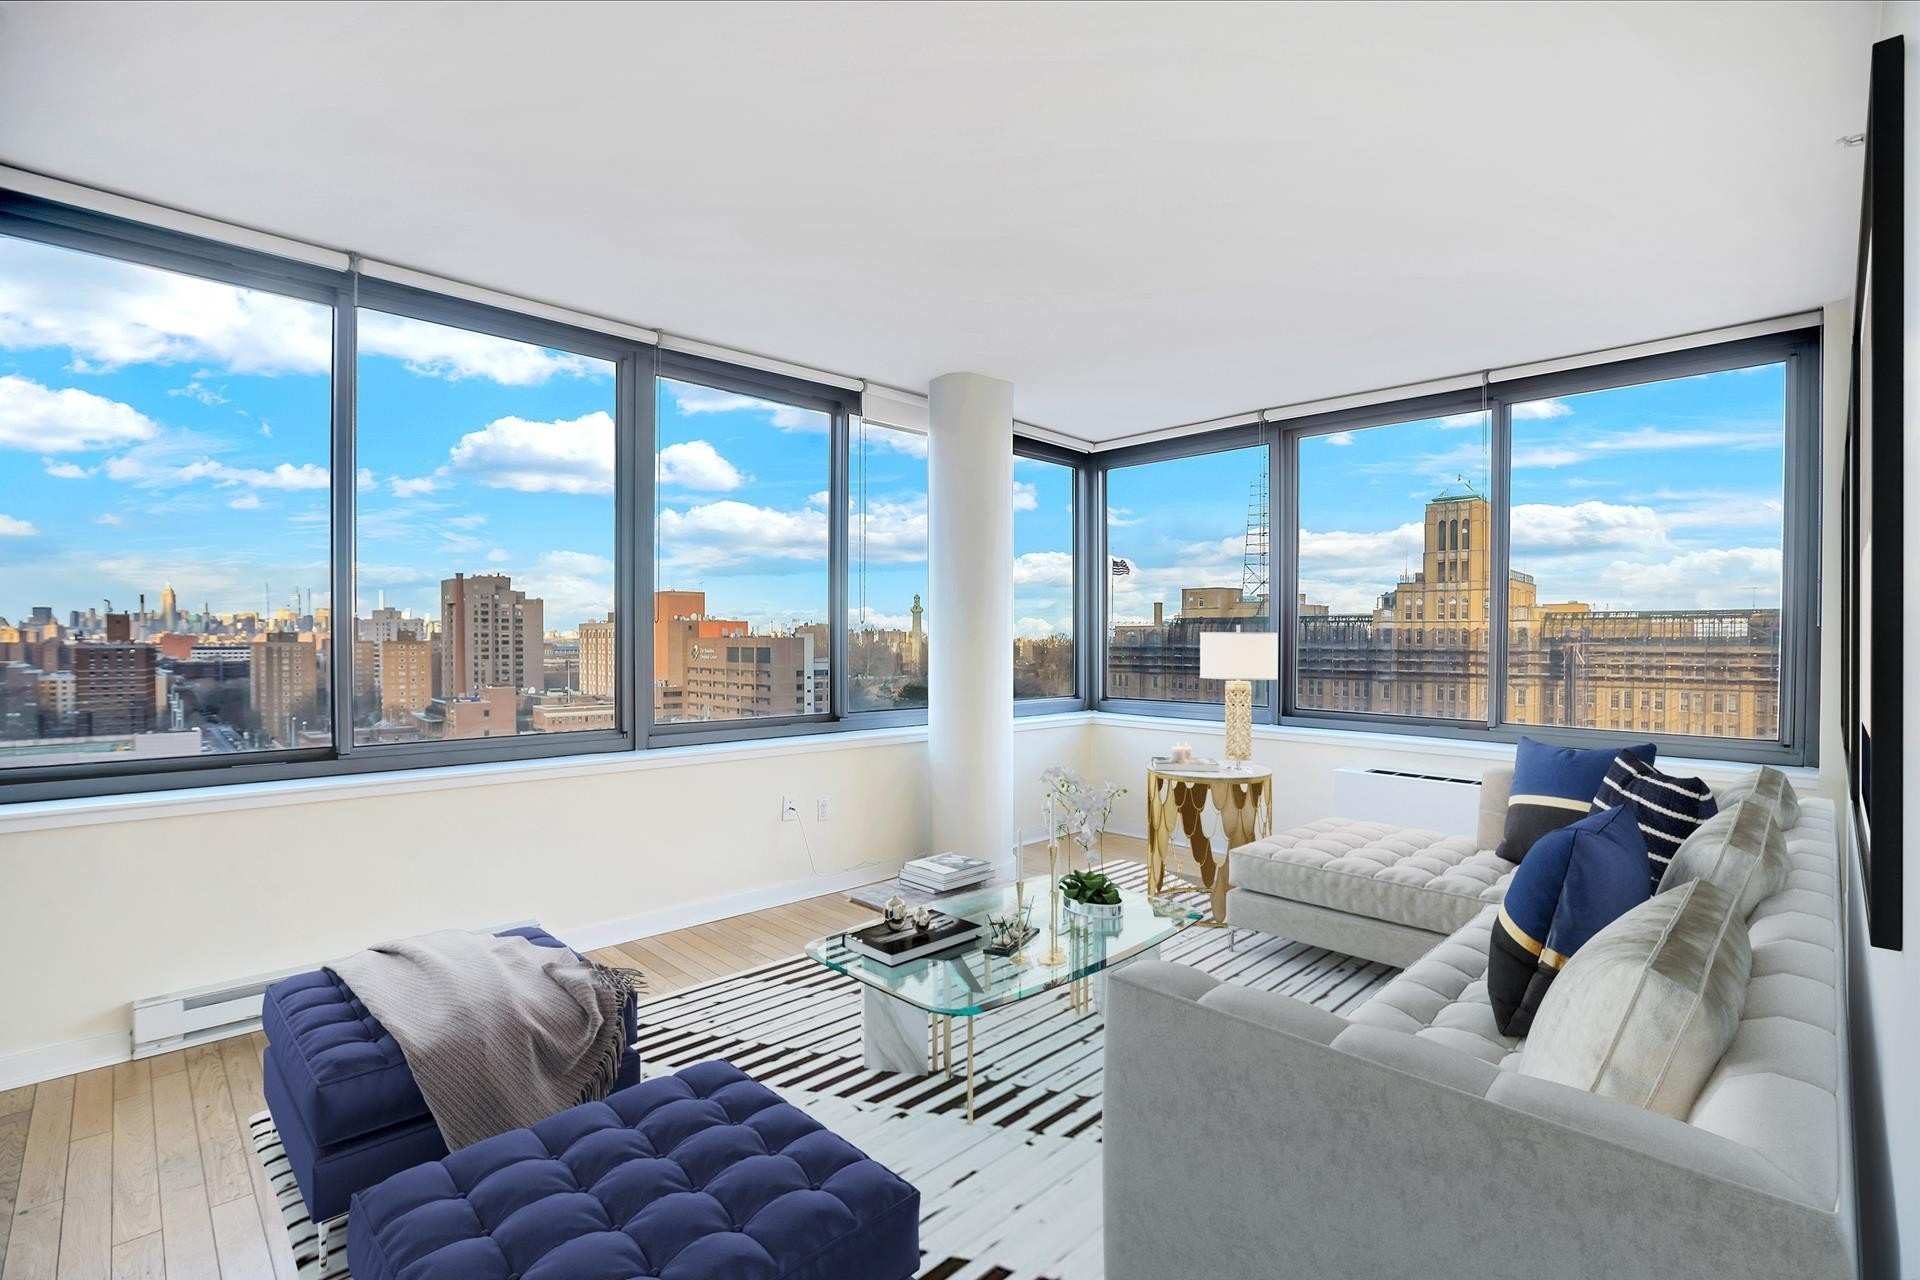 Condominium for Sale at Forte, 230 ASHLAND PL , 15A Fort Greene, Brooklyn, NY 11217